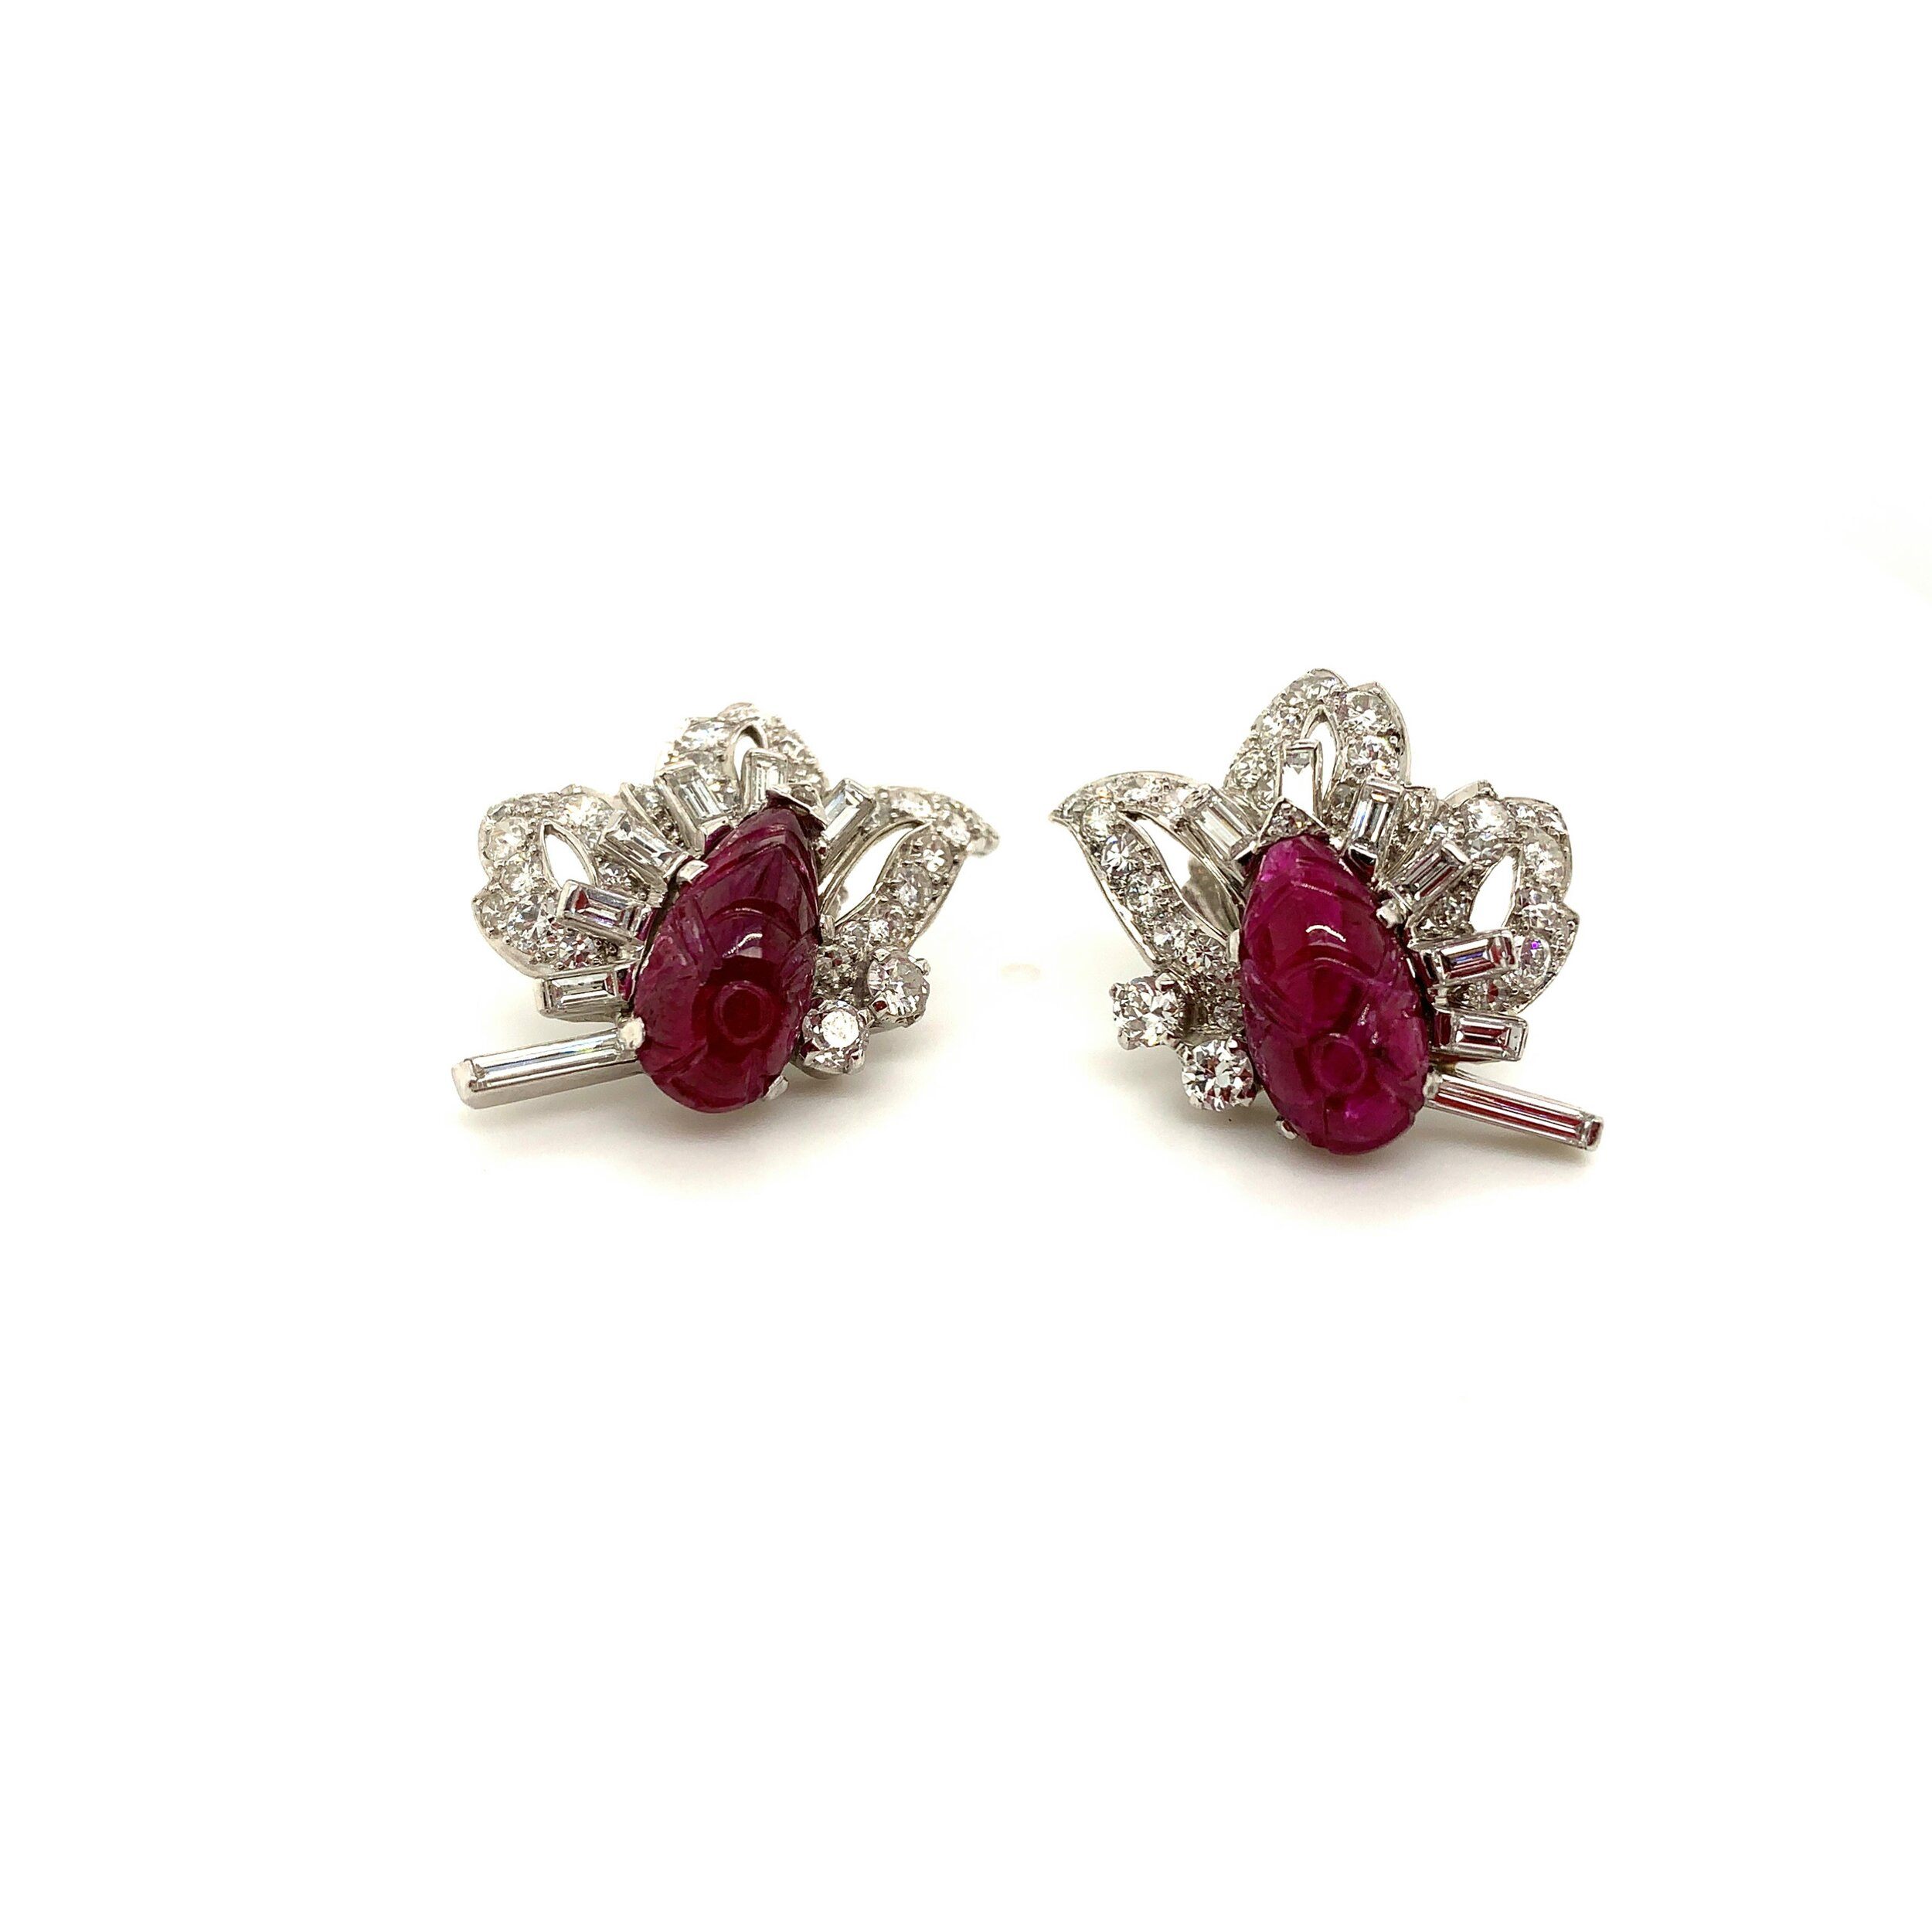 Carved Ruby and Diamond Earrings in Platinum   Est. US$ 4,000-5,500